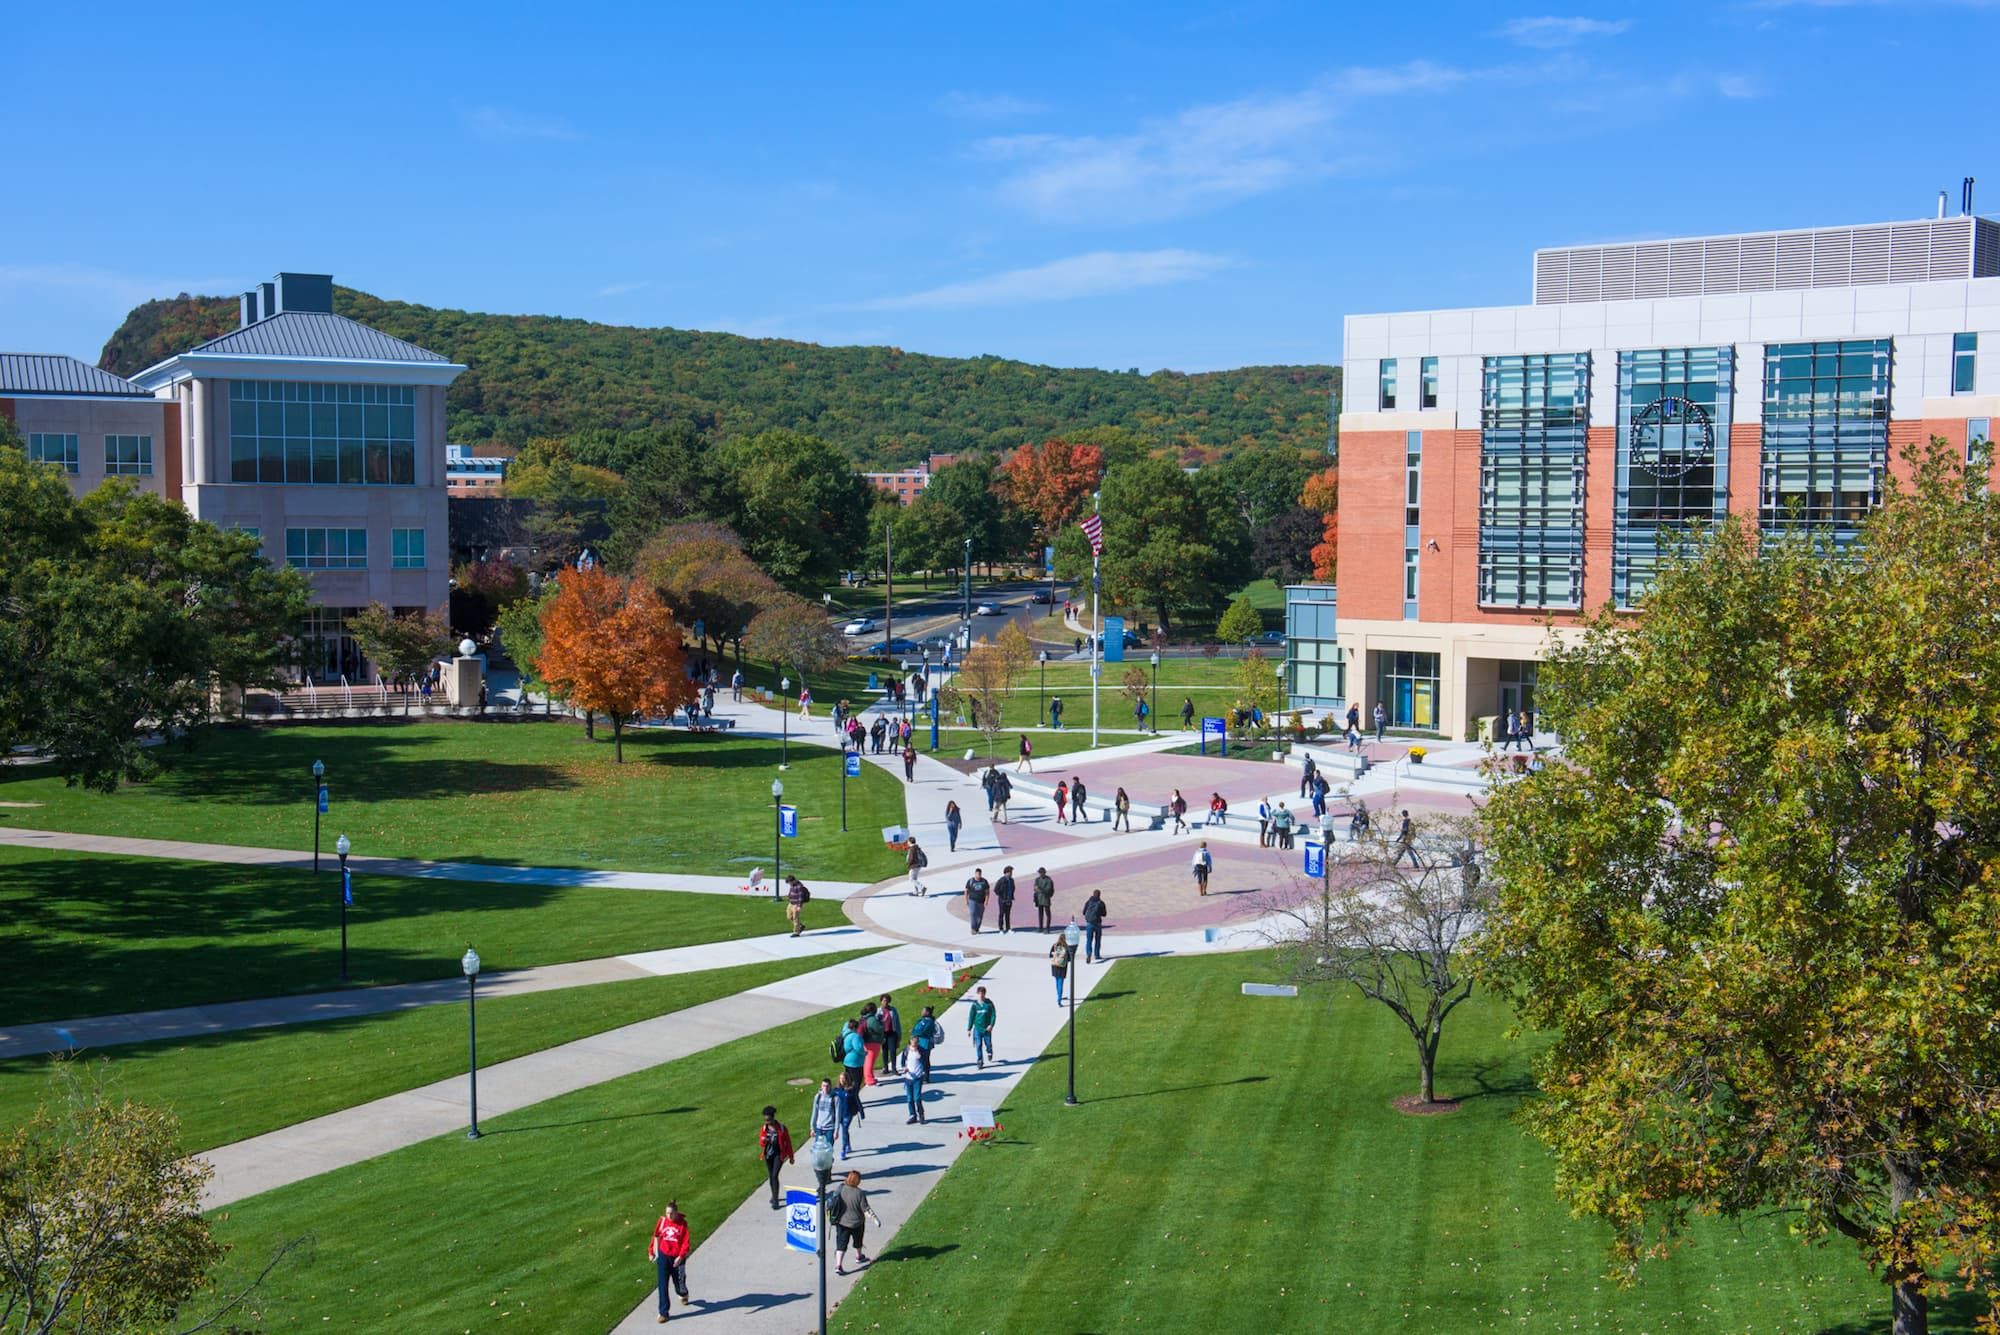 Top 10 Buildings You Need to Know at Southern Connecticut State University